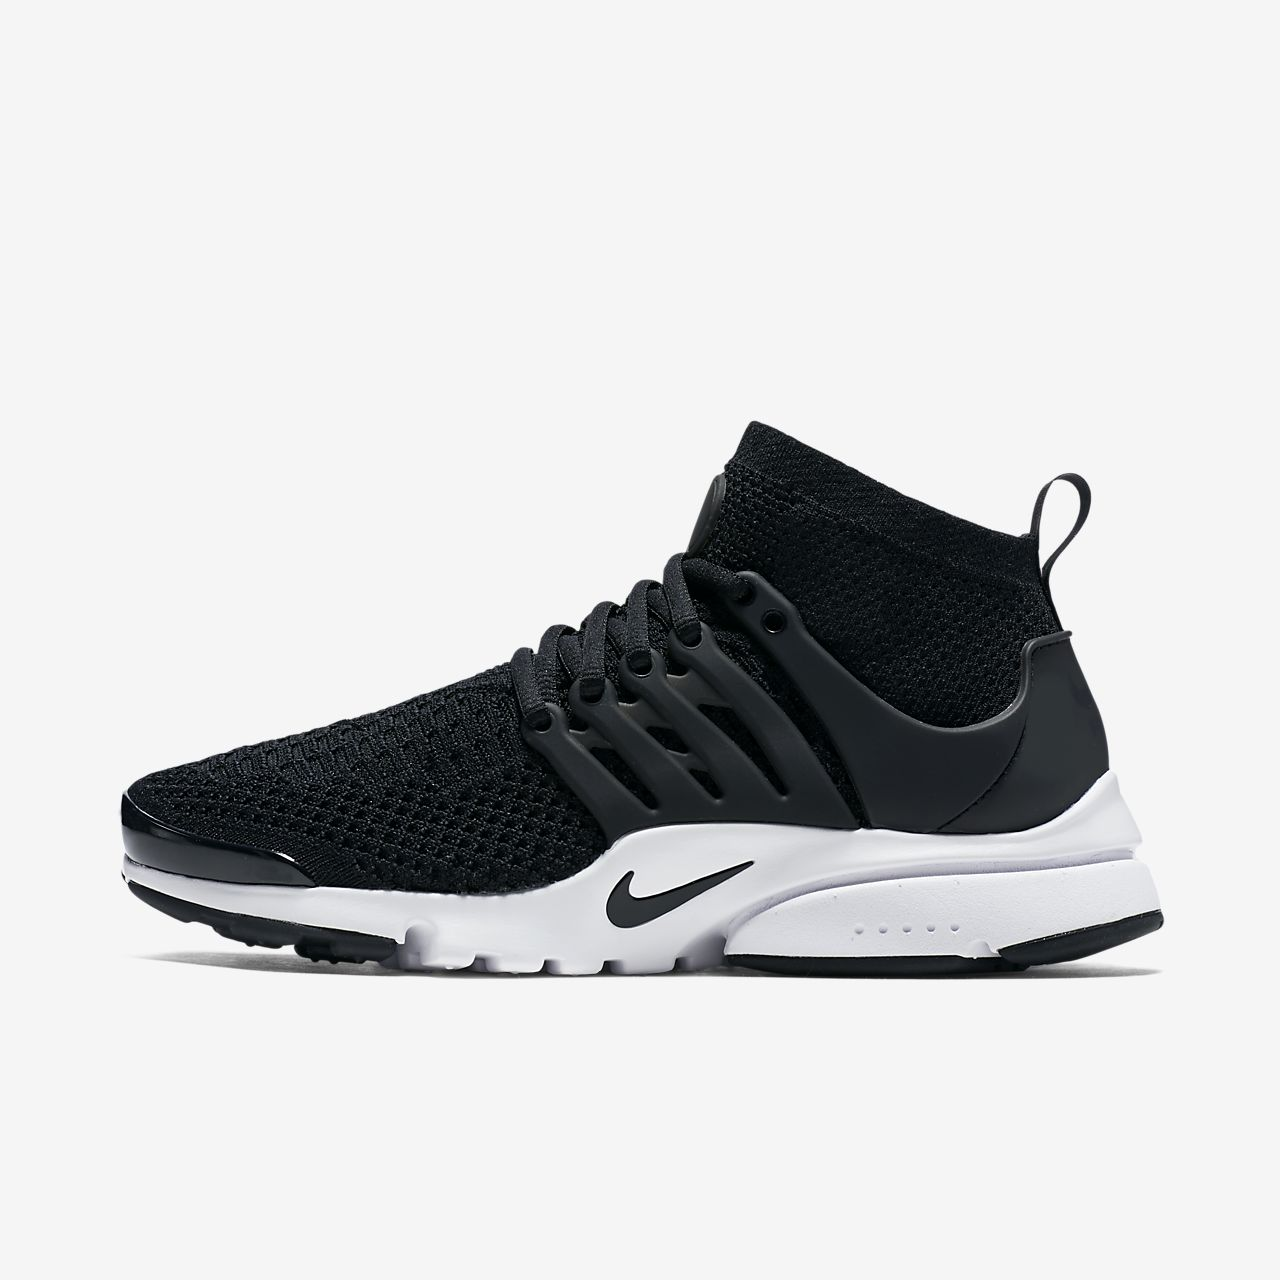 ... Nike Air Presto Ultra Flyknit Women's Shoe